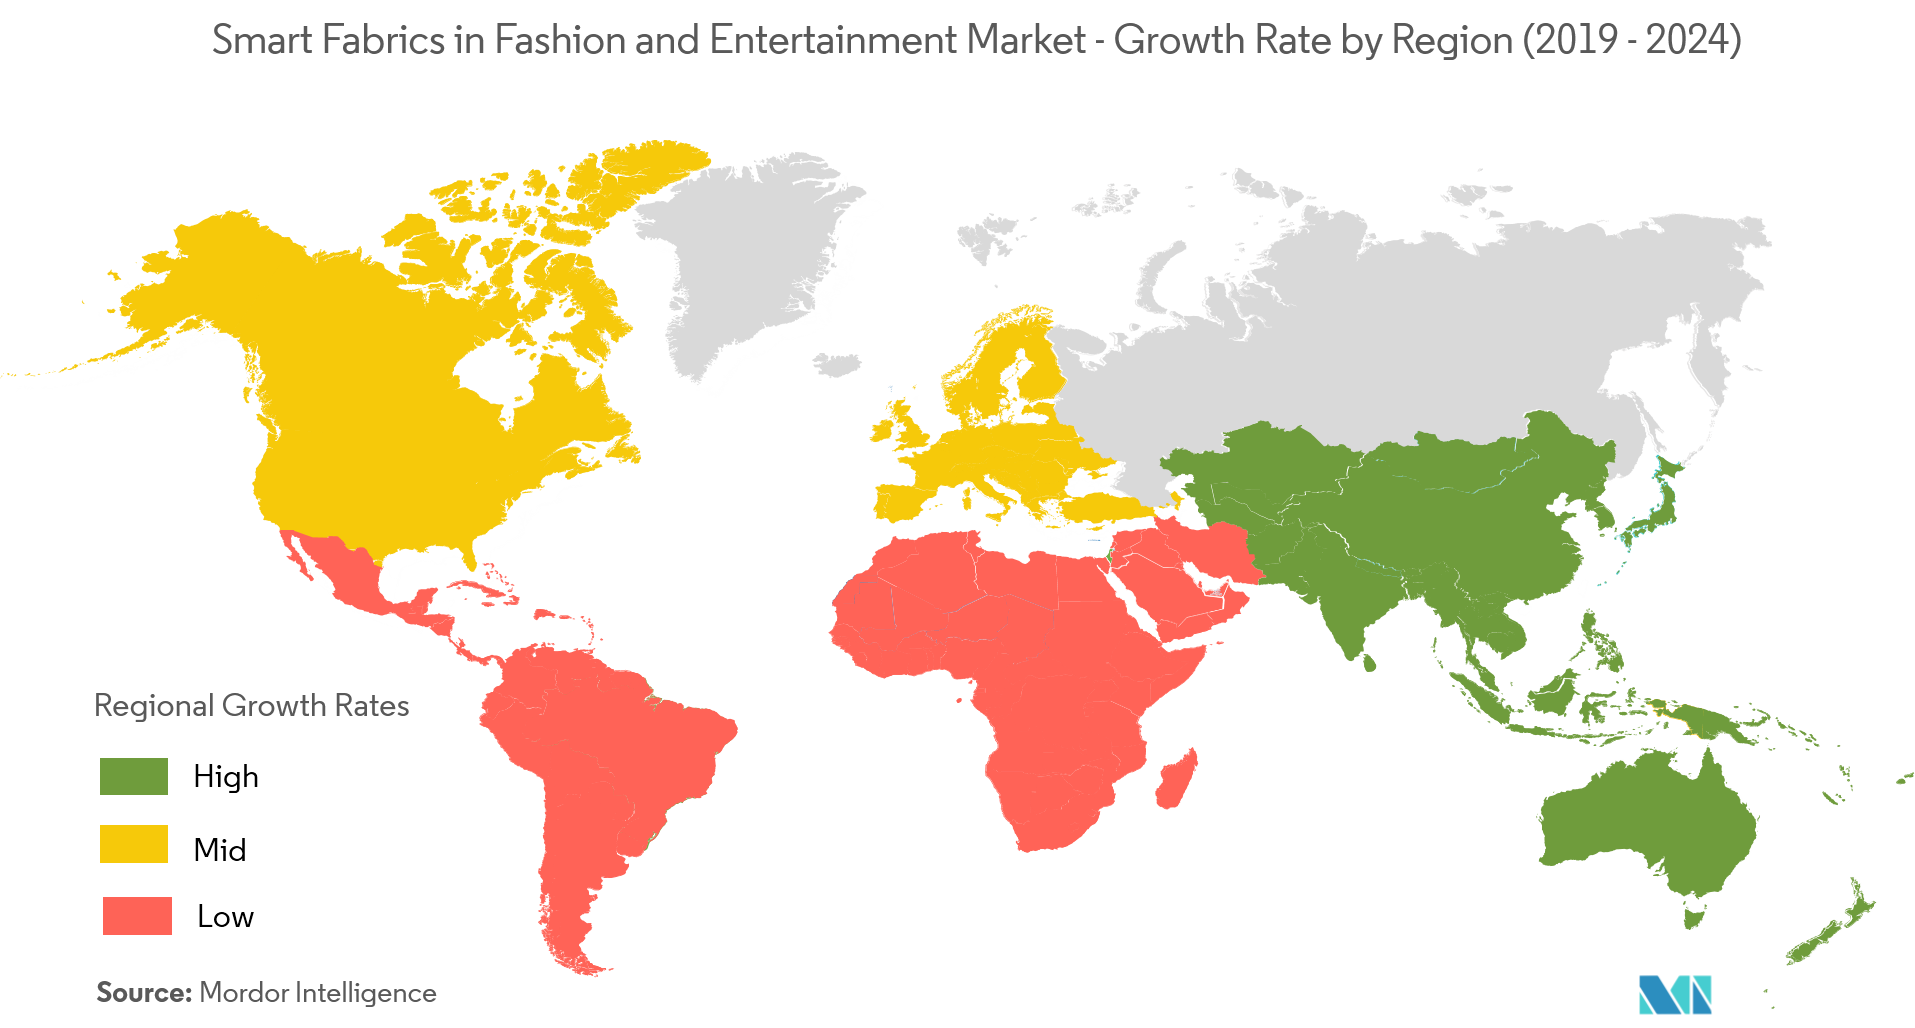 smart fabrics in fashion and entertainment market